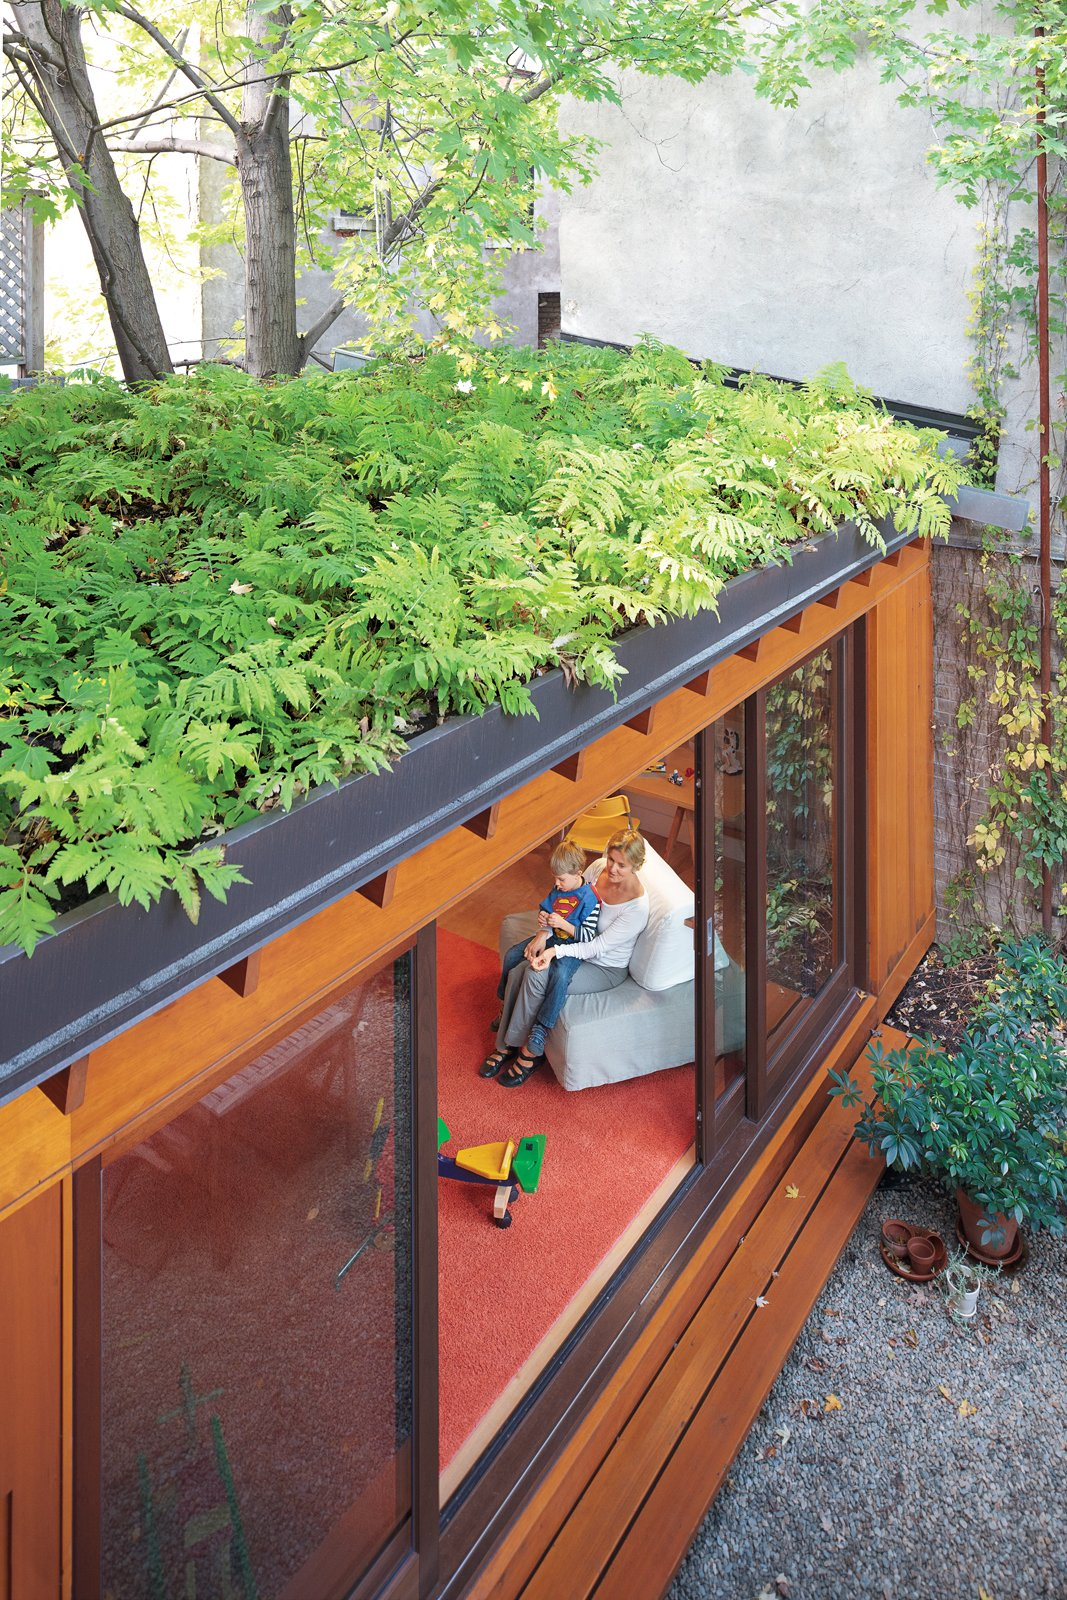 A small, single-story addition to the row house adds a playroom without eating up too much outdoor space. A green roof also helps makes up for lost garden beds, while creating attractive, leafy views from the second and third floors. In summer, when the sliding doors are left wide open, indoor and outdoor spaces blend together.  The Most Popular Homes in Dwell: 81-100 by Diana Budds